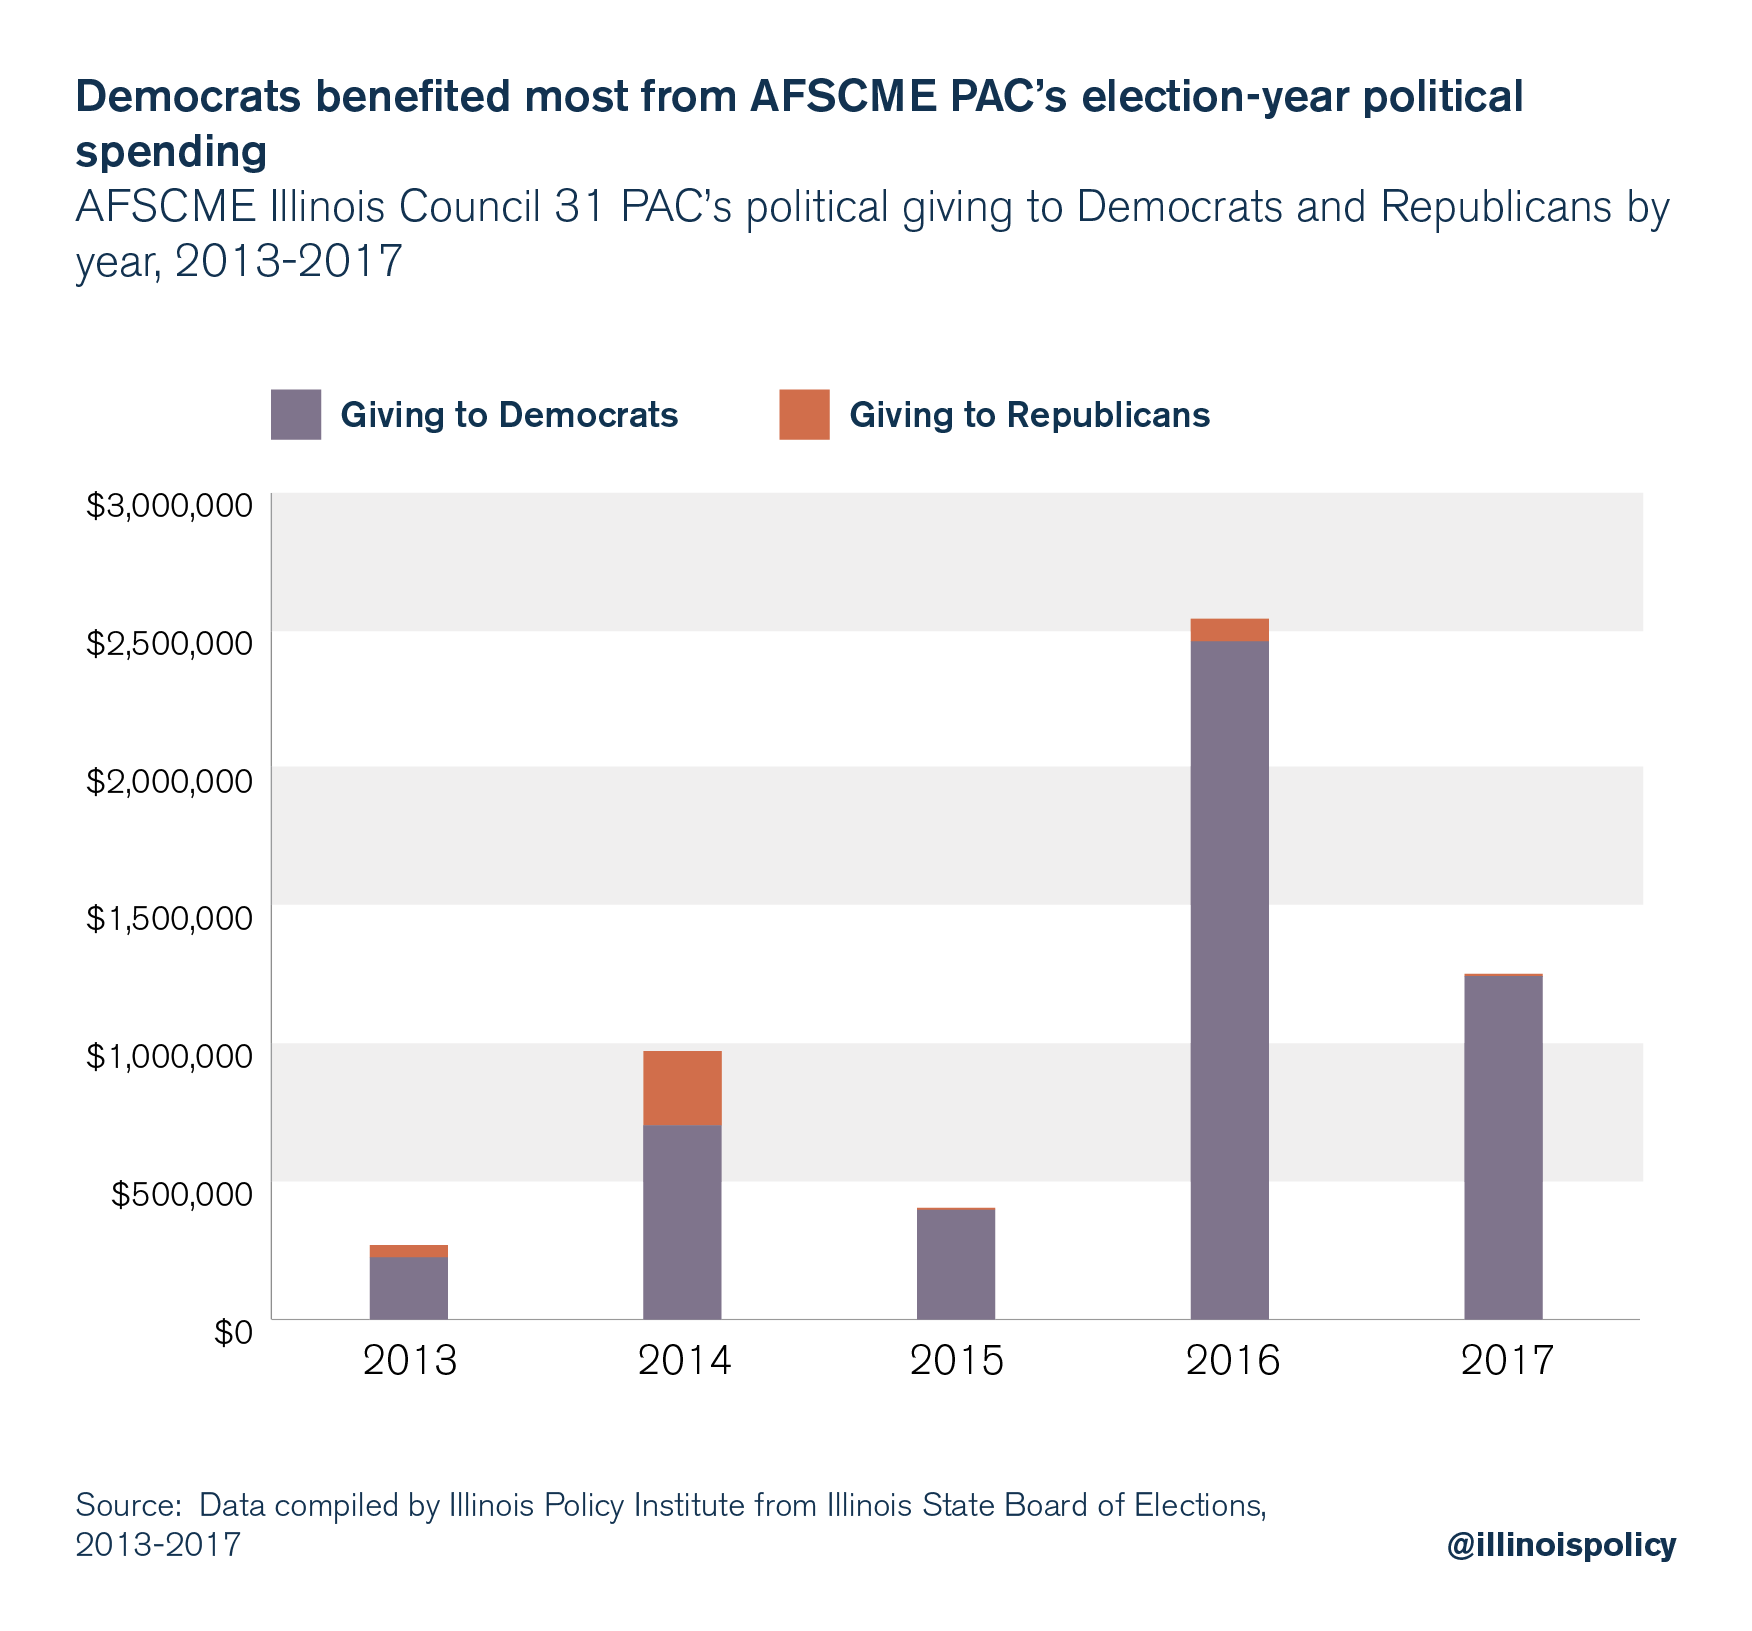 Democrats benefited most from AFSCME PAC's election-year political spending